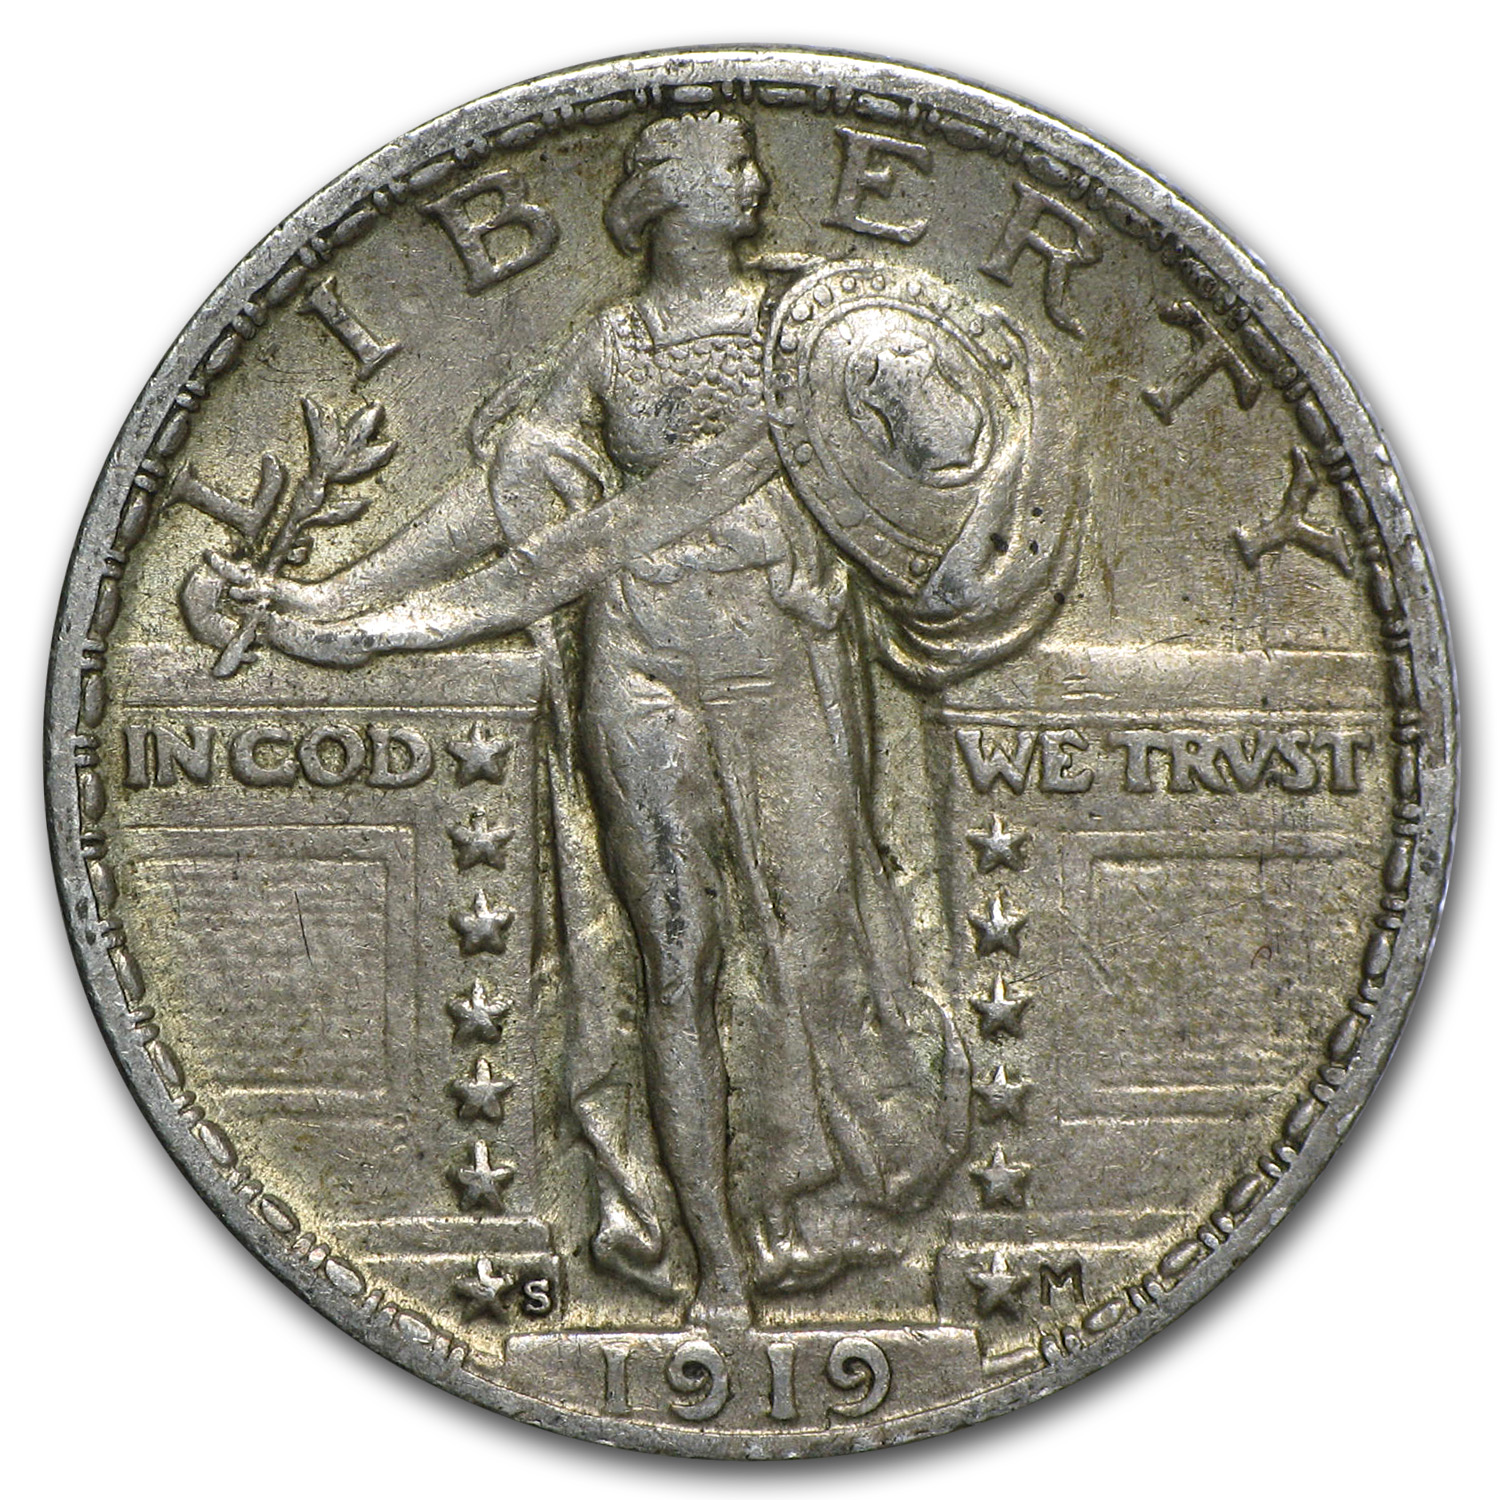 1919-S Standing Liberty Quarter - Almost Uncirculated